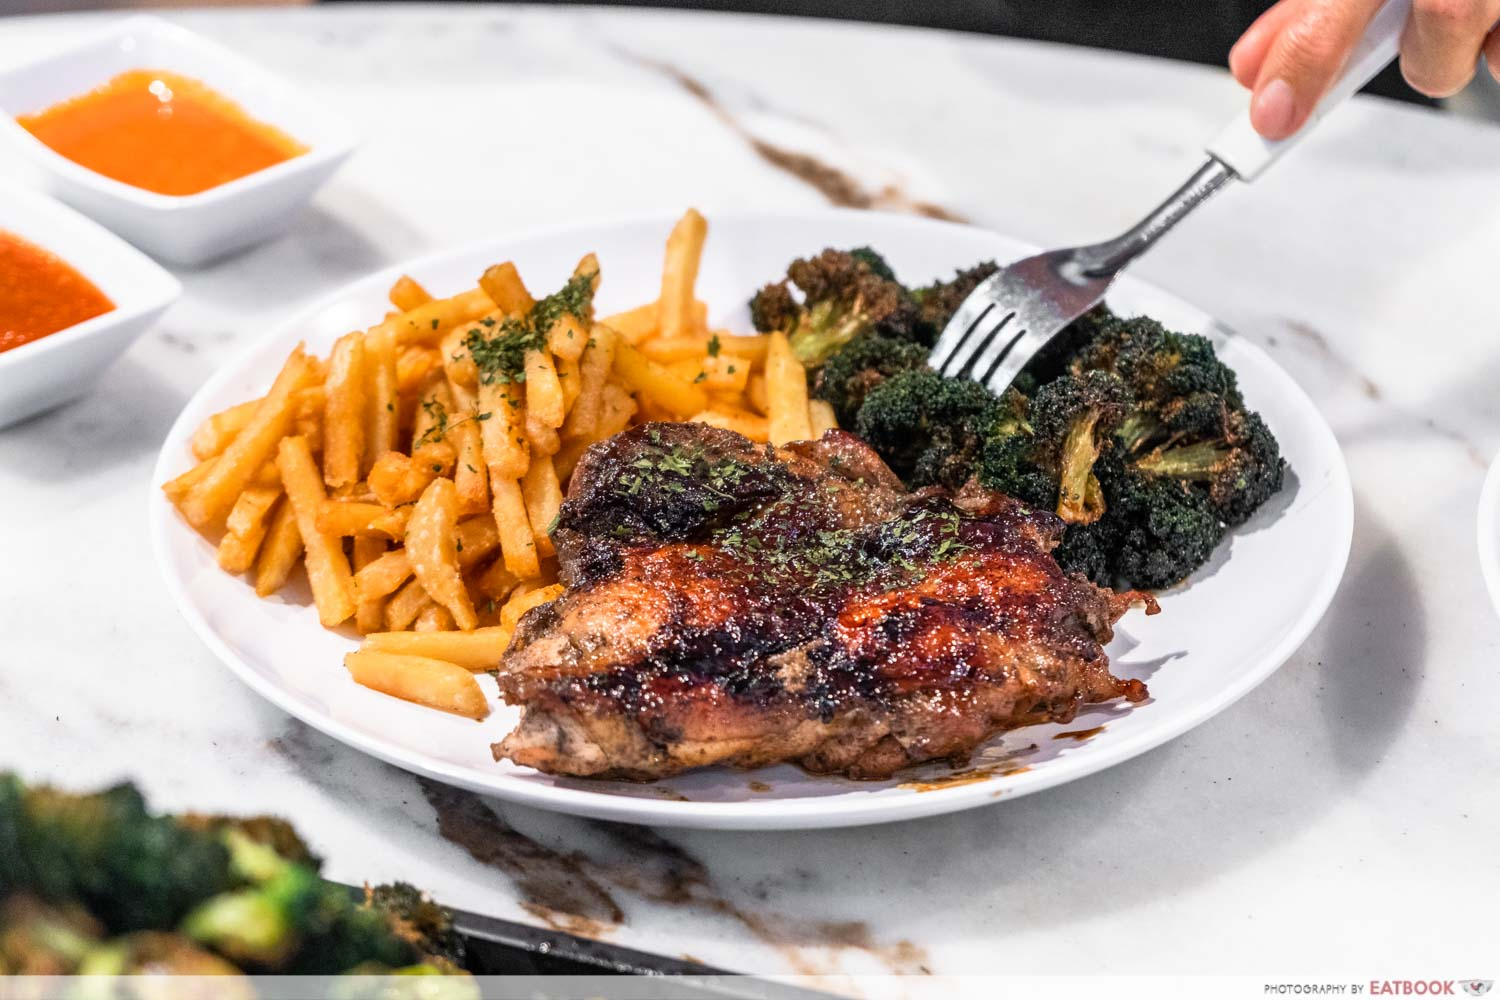 Chef Bui Bui - signature chicken chop